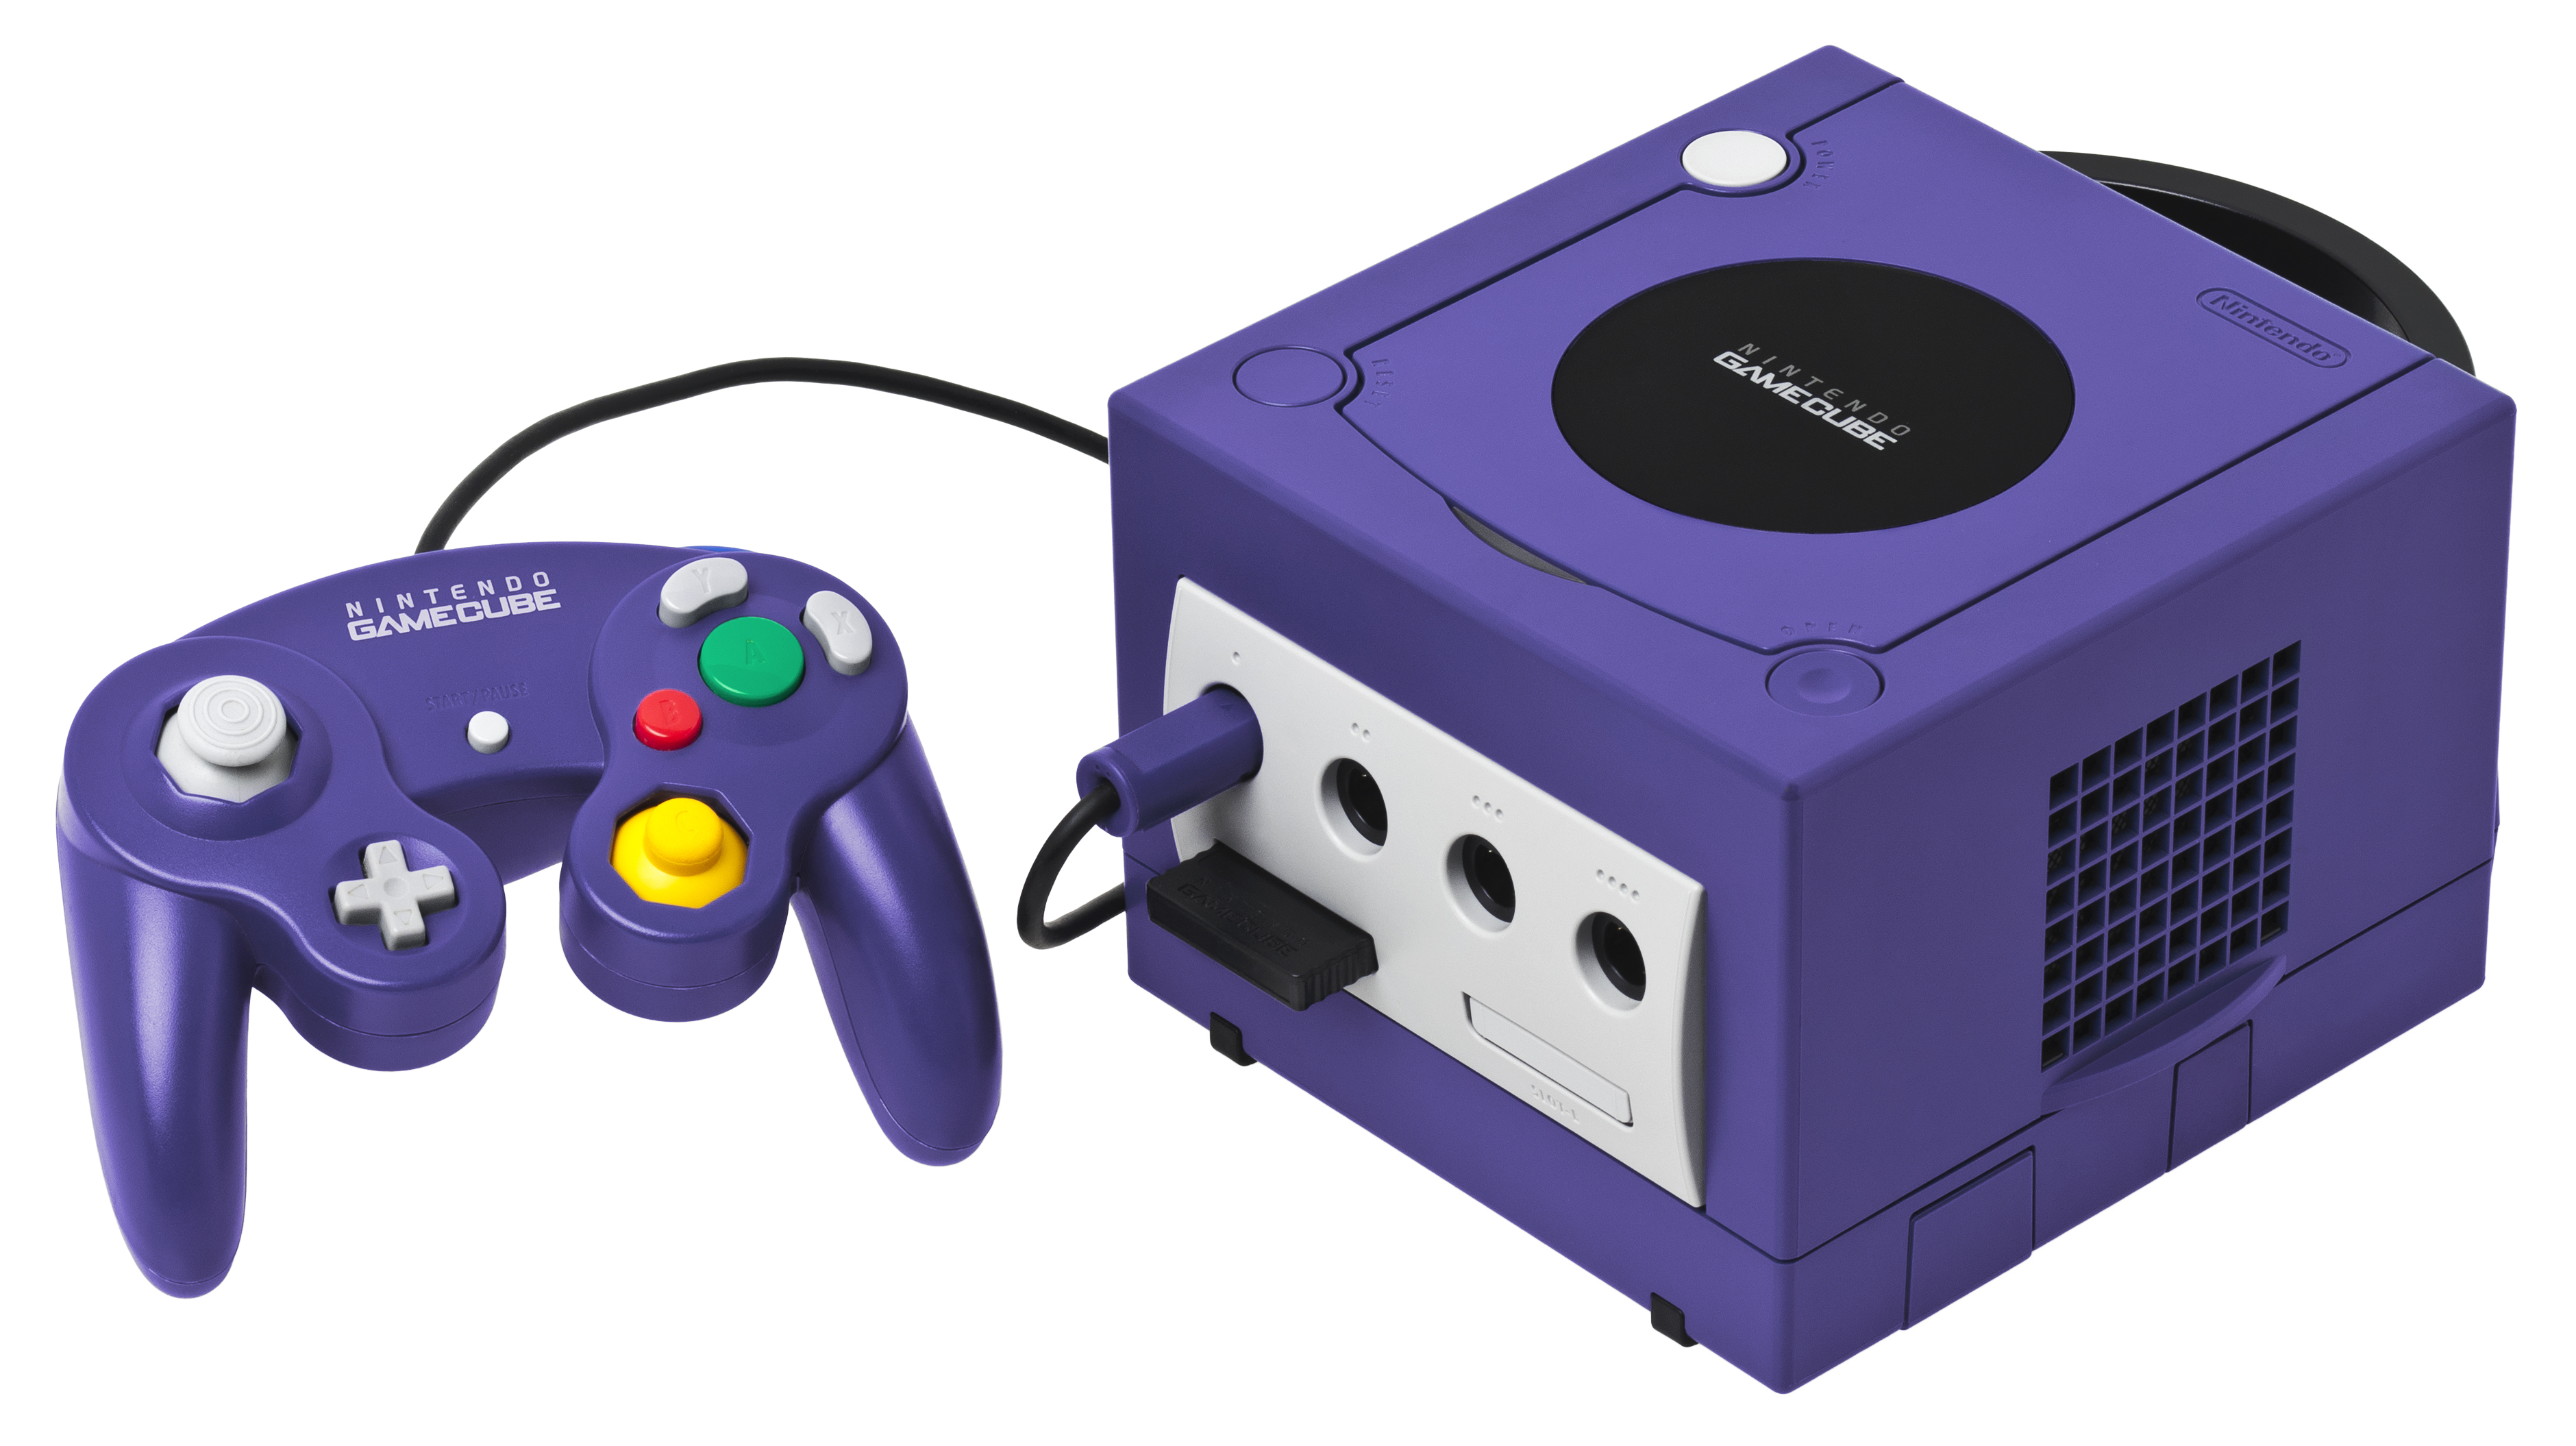 Game boy color list - List Of Gamecube Games